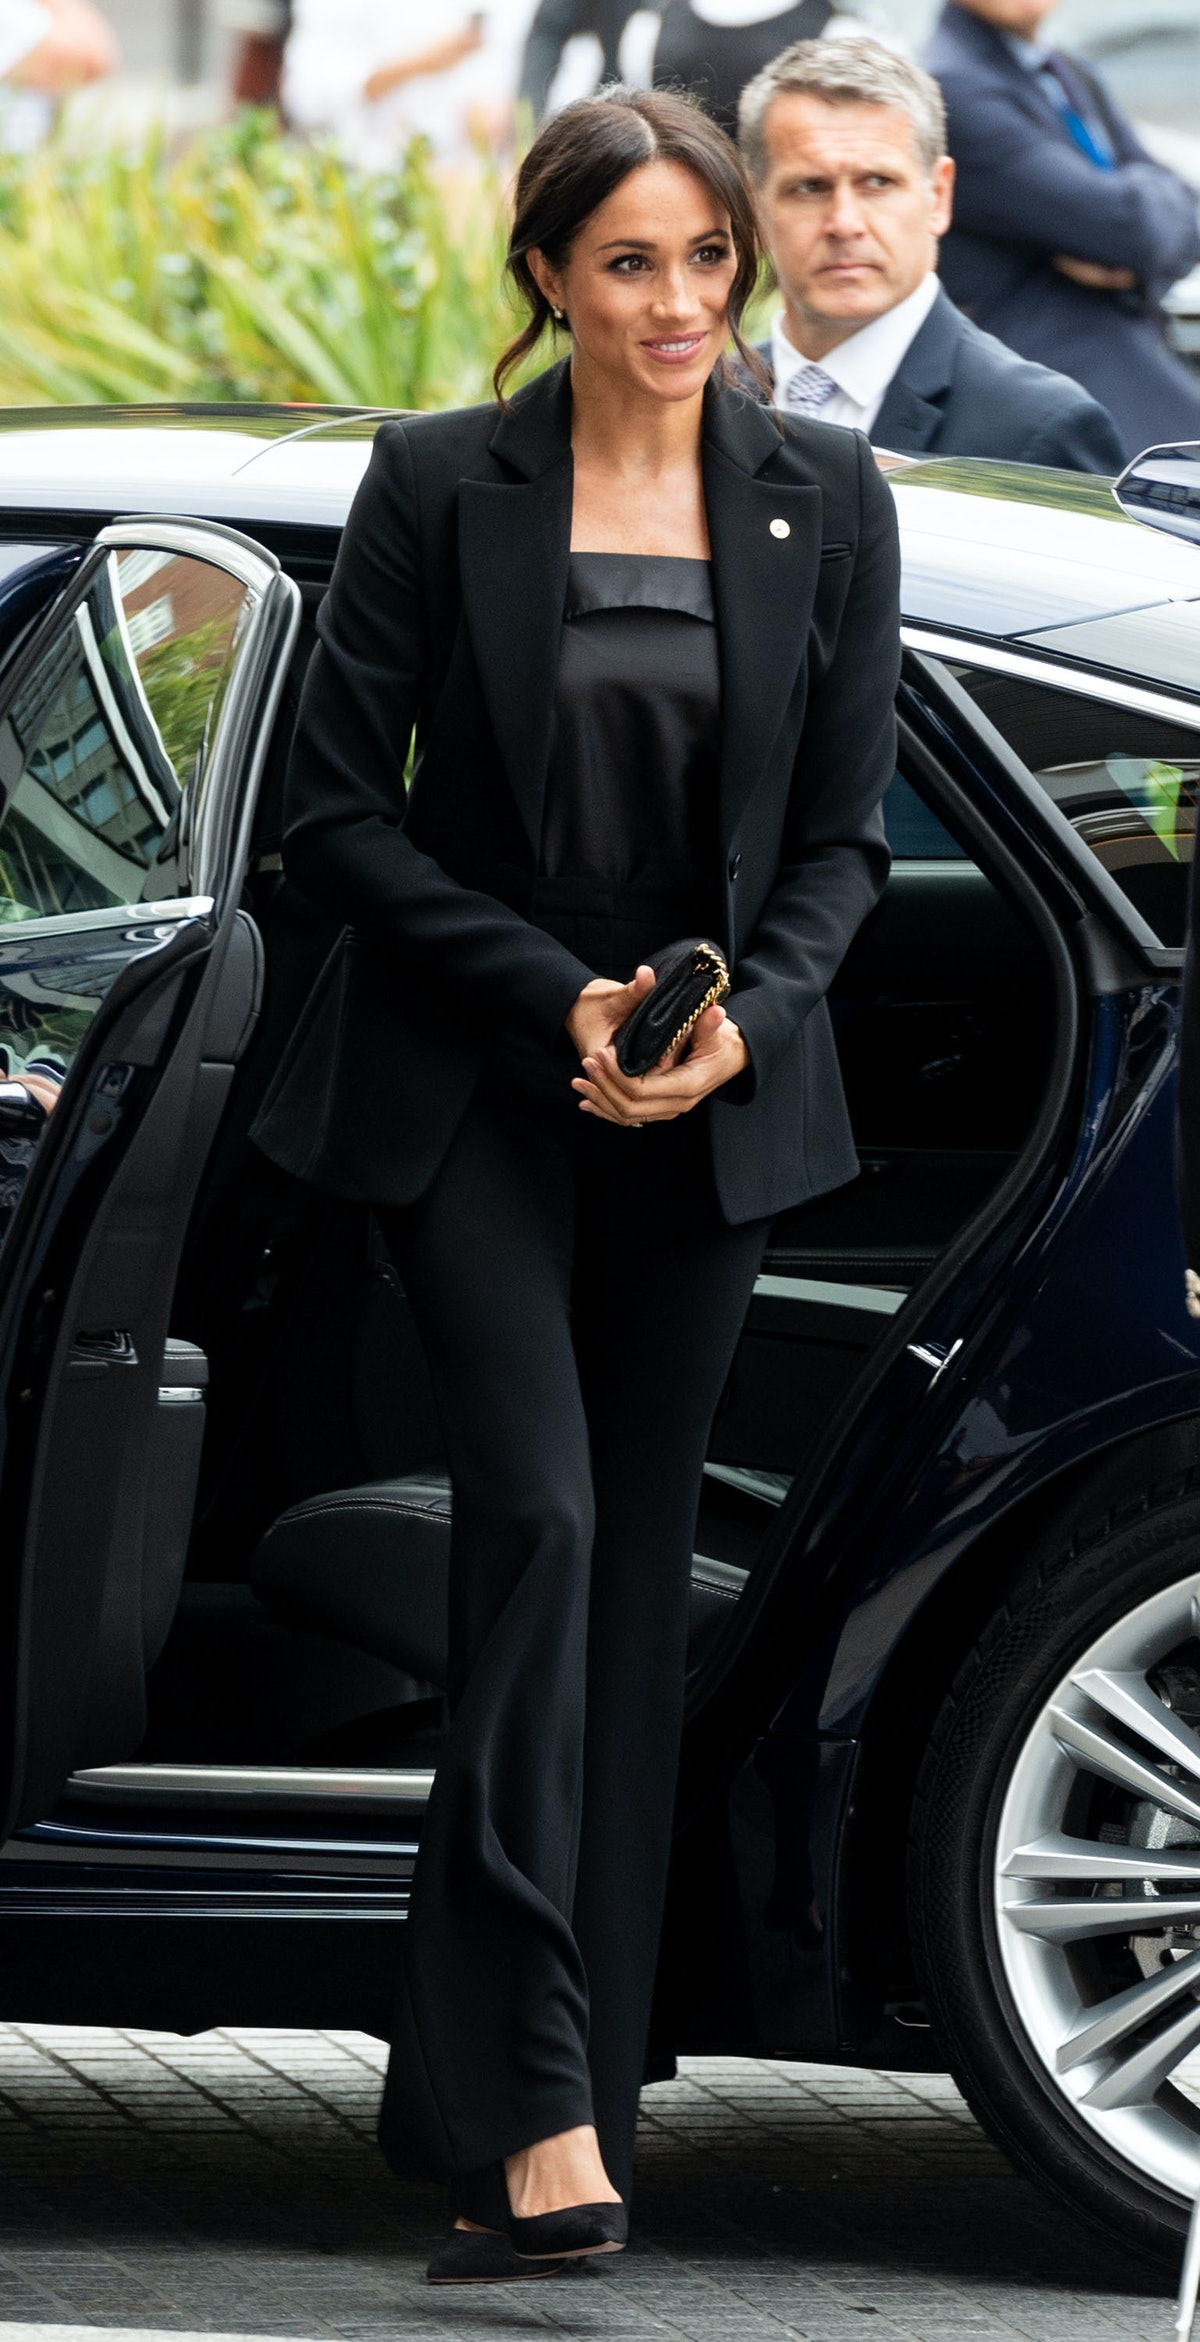 Meghan Markle wore a black silk camisole with a pantsuit for the WellChild Awards in 2018.